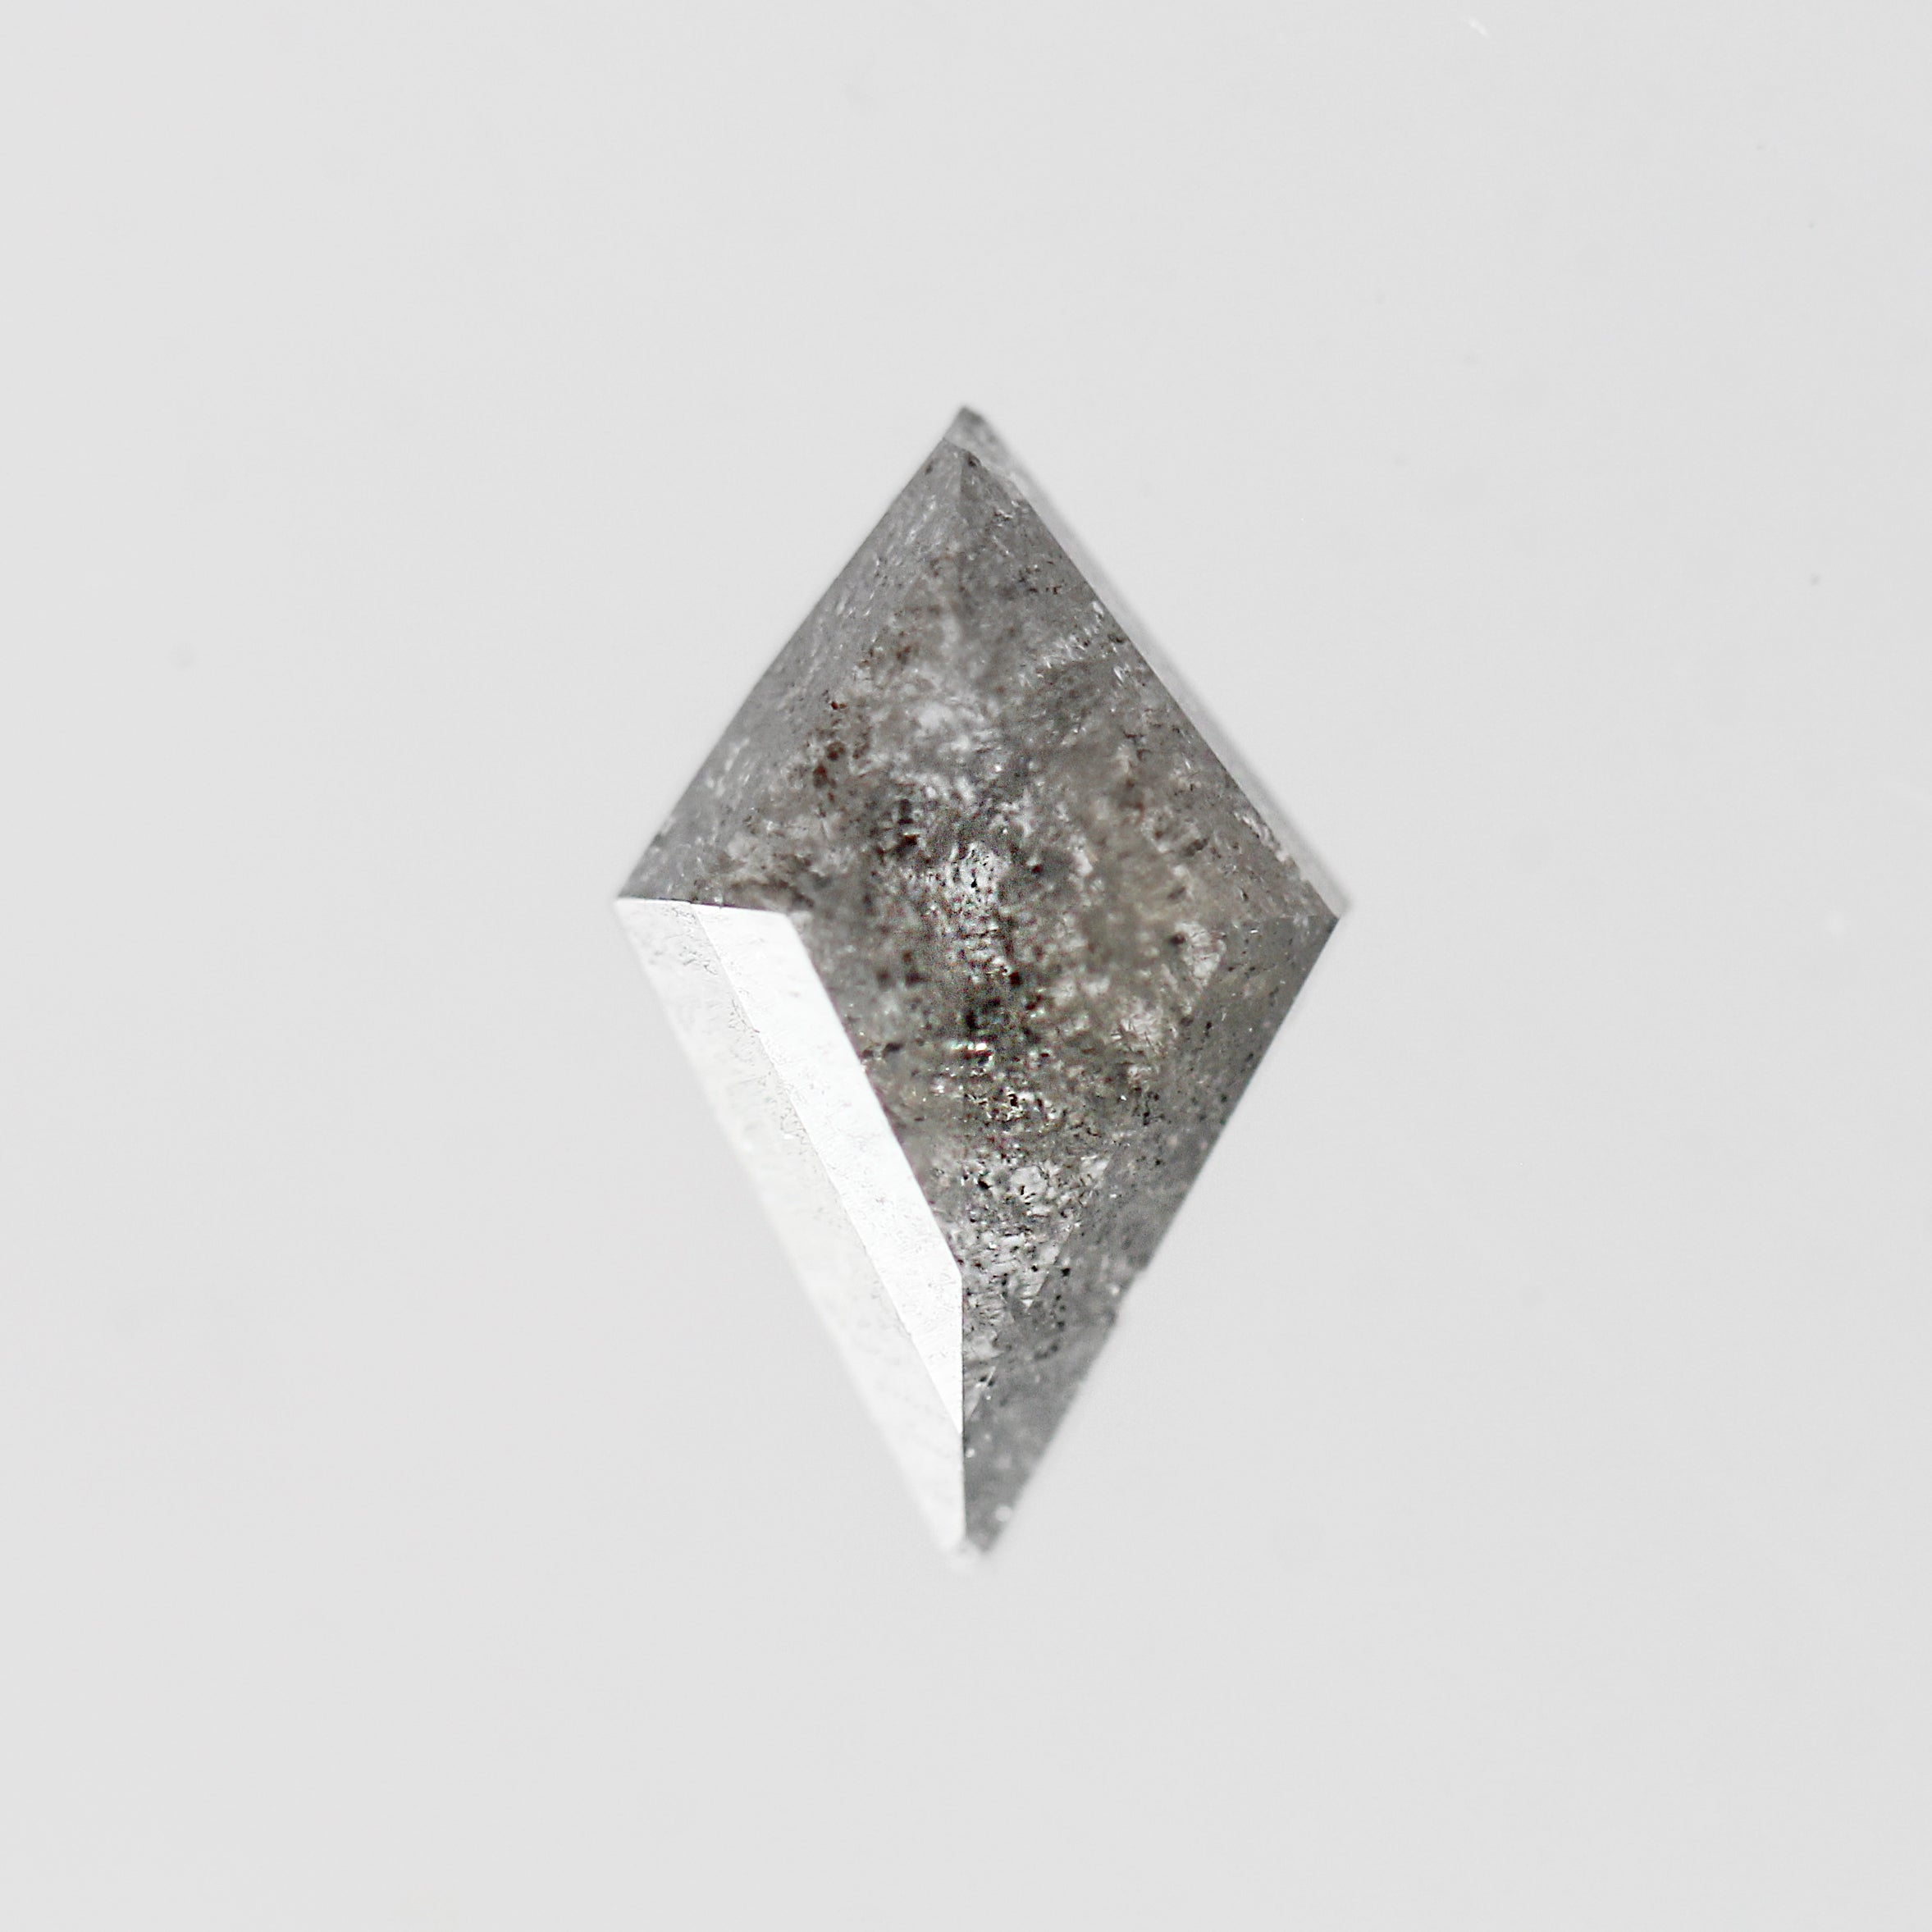 1.26 Carat Kite Celestial Diamond - Inventory Code KRG126 - Celestial Diamonds ® by Midwinter Co.